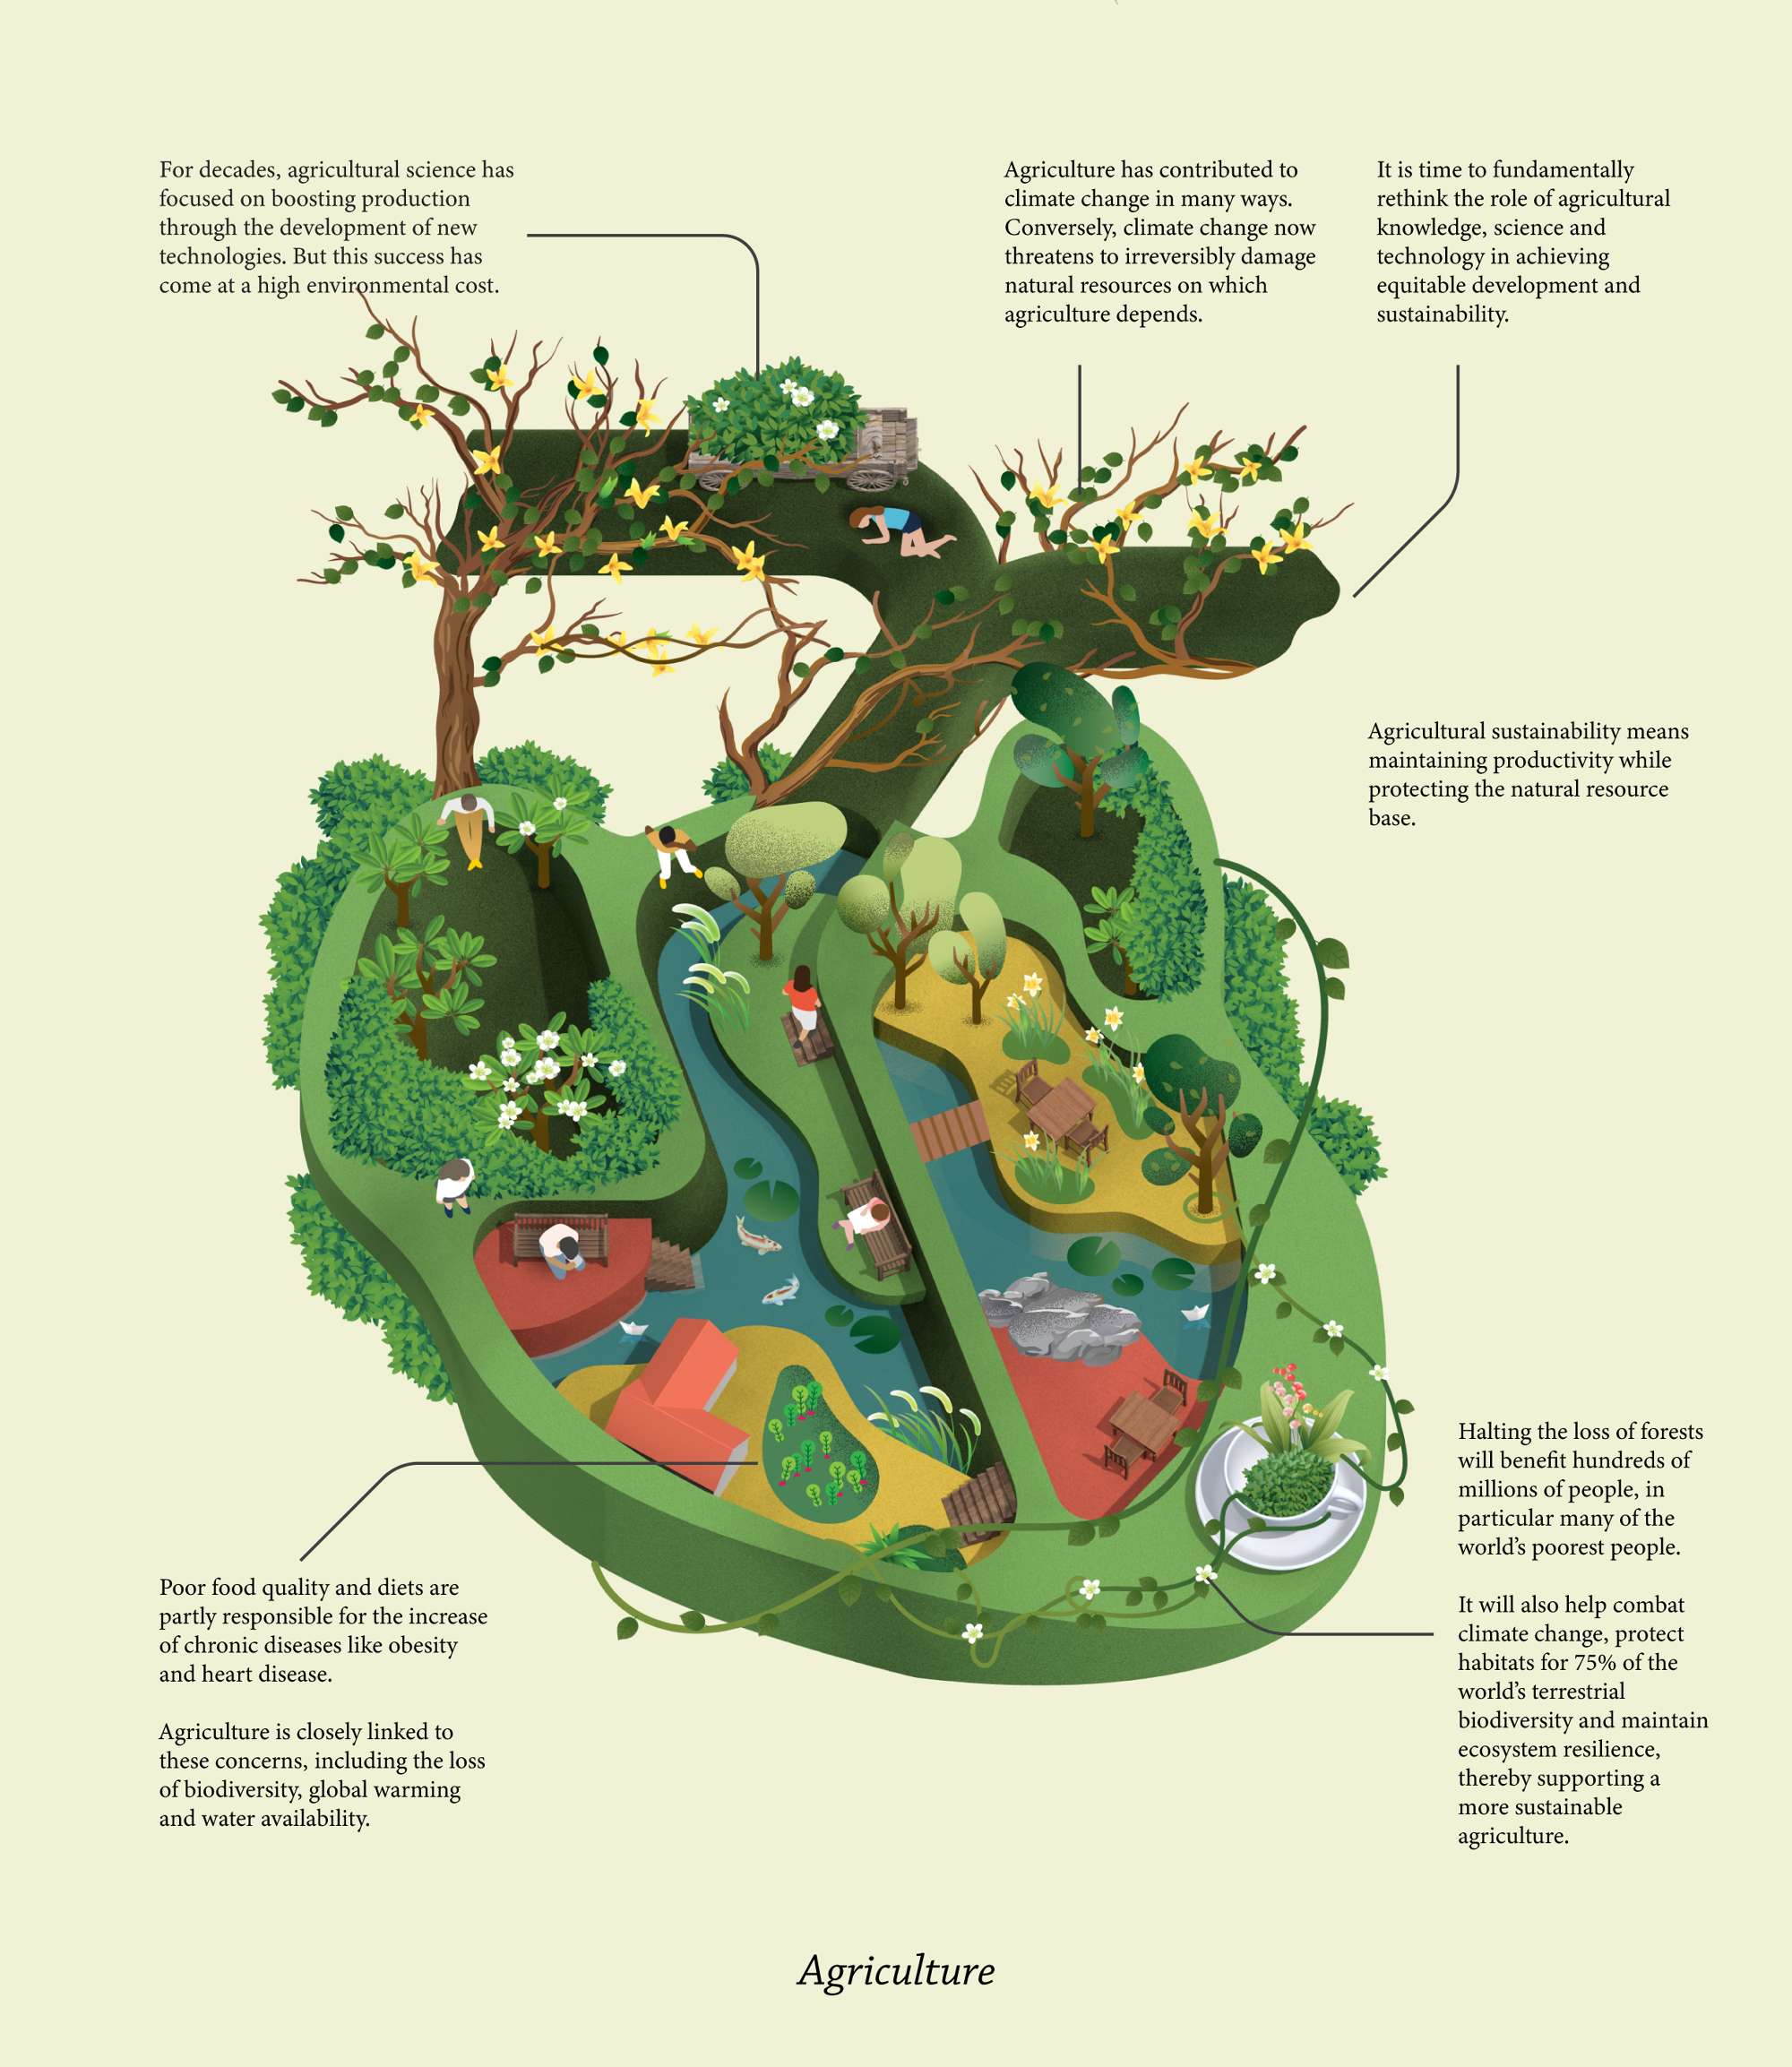 illustrated shape of human heart with lots of greenery, trees, and people in different compartments